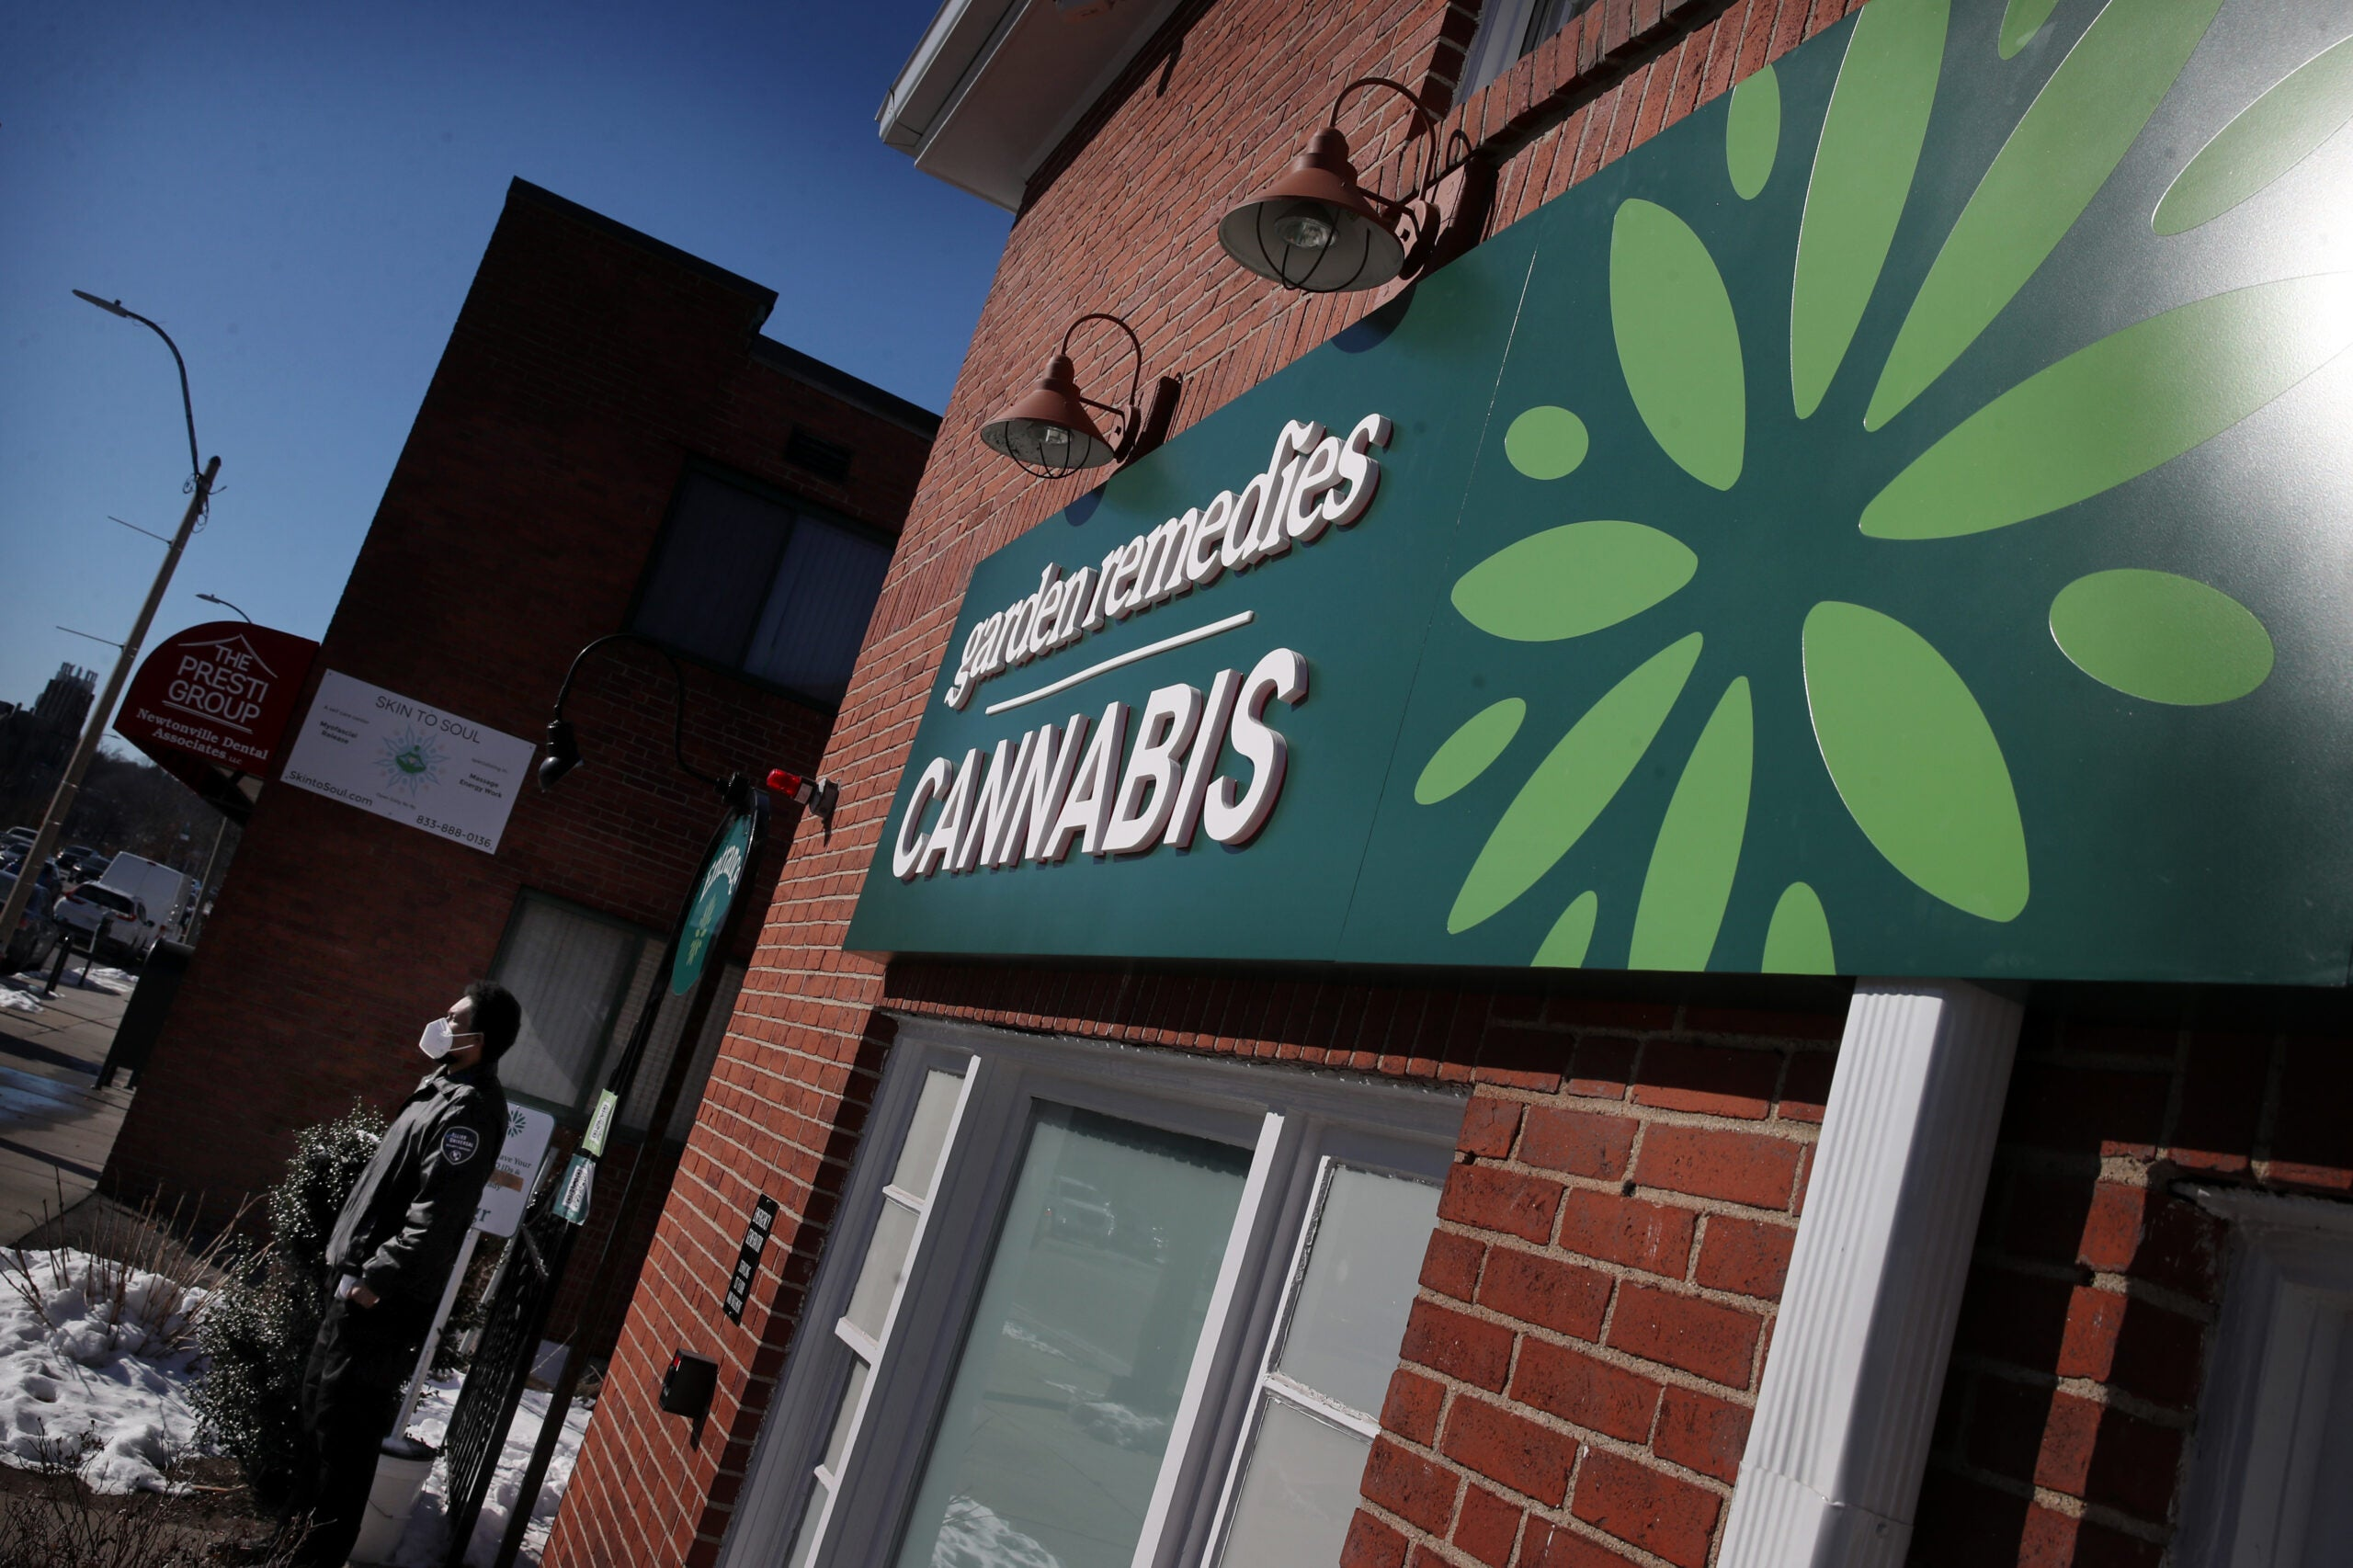 These are the best cannabis dispensaries in Mass., according to readers